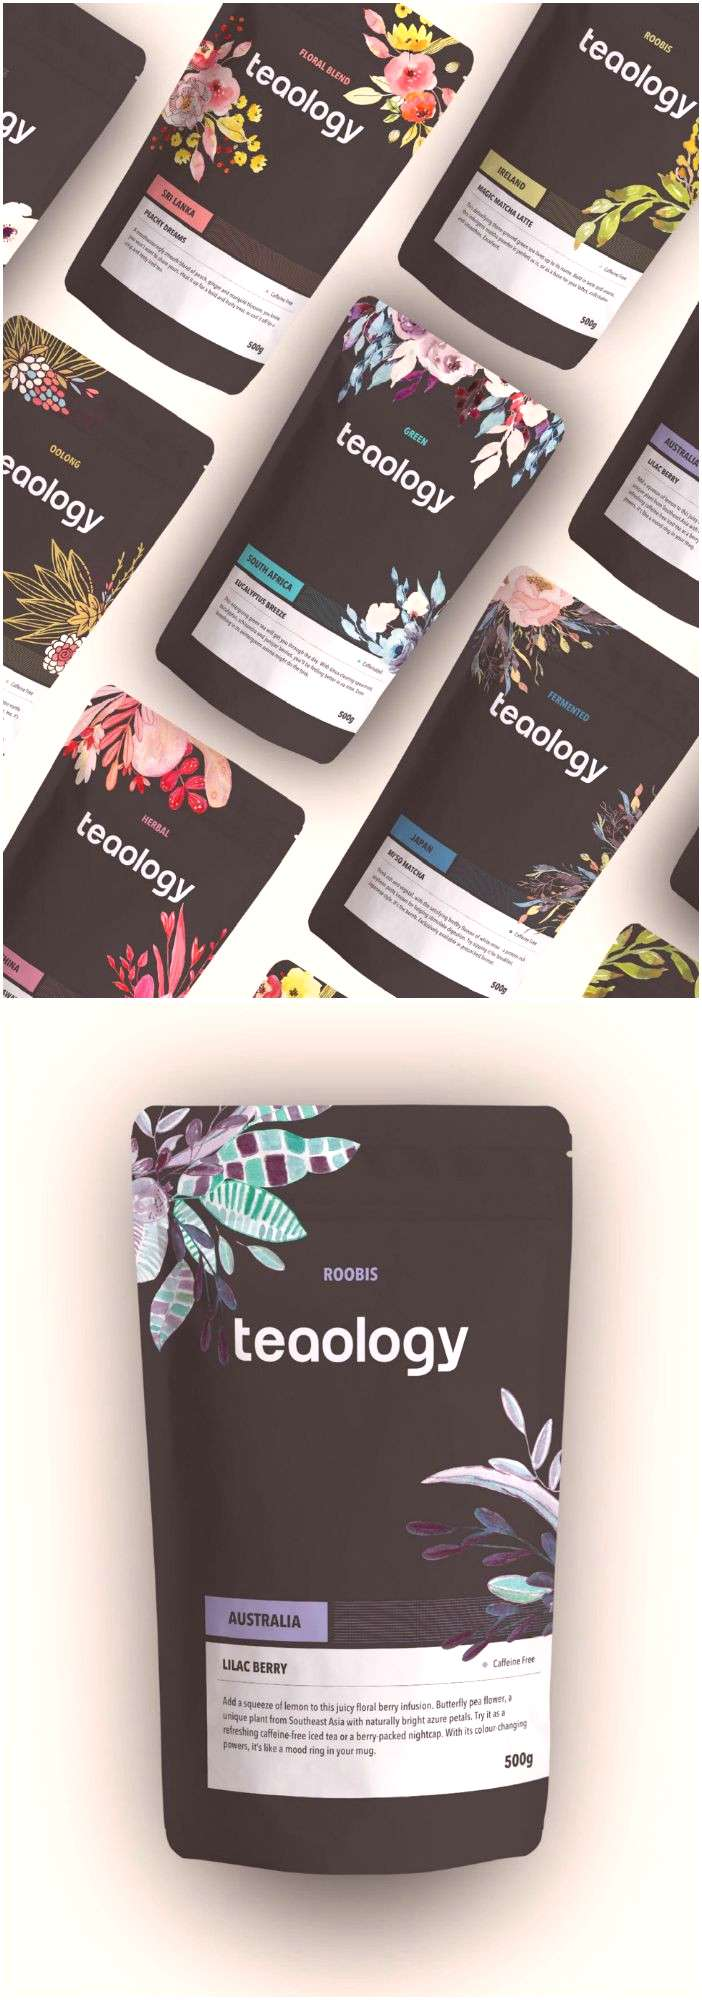 Binary Vision Studios - Teaology Packaging Design / Submit /submit / World Brand Design Society